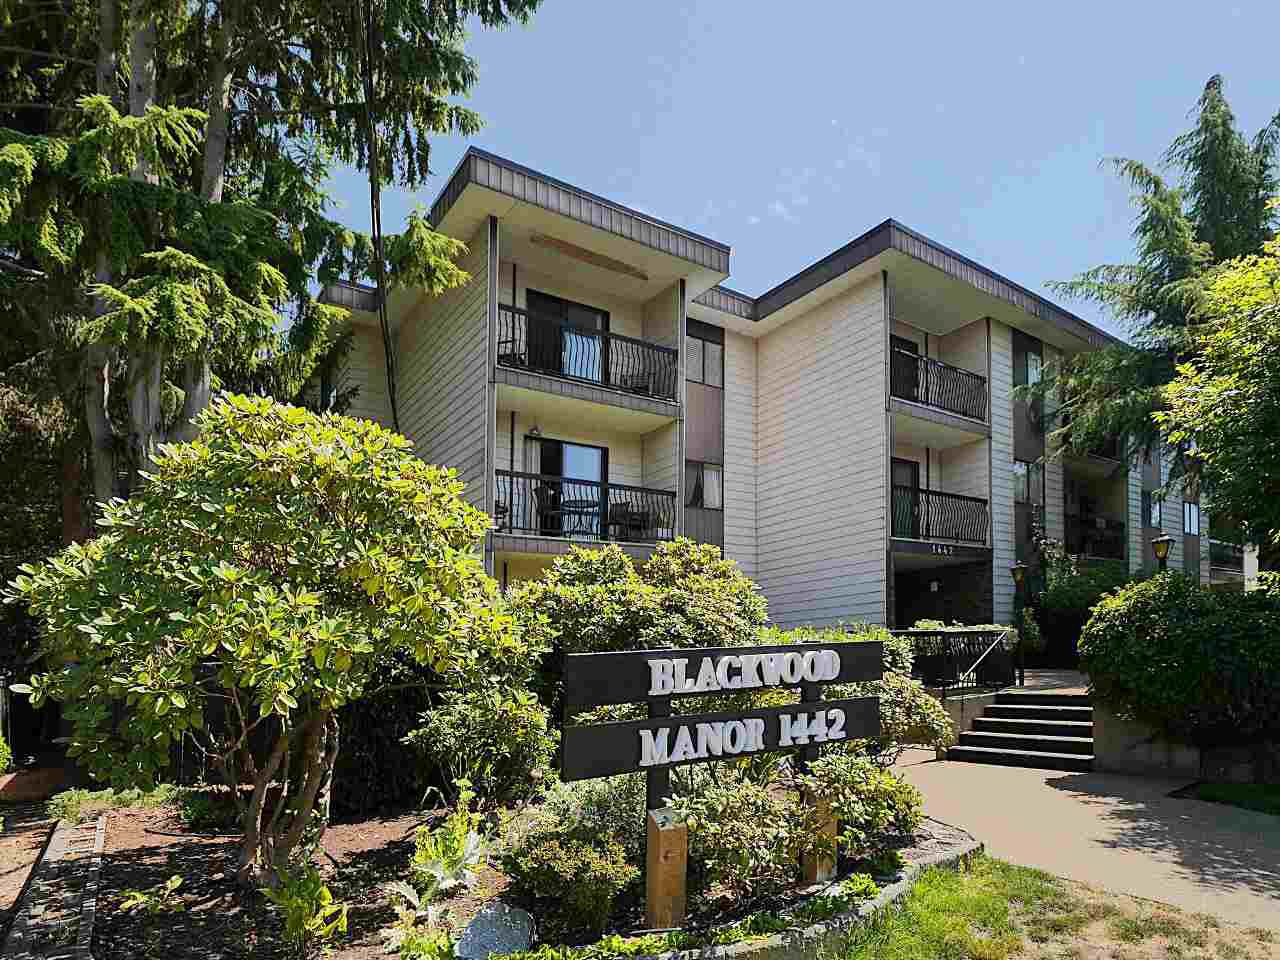 "Main Photo: 201 1442 BLACKWOOD Street: White Rock Condo for sale in ""Blackwood Manor"" (South Surrey White Rock)  : MLS®# R2292905"